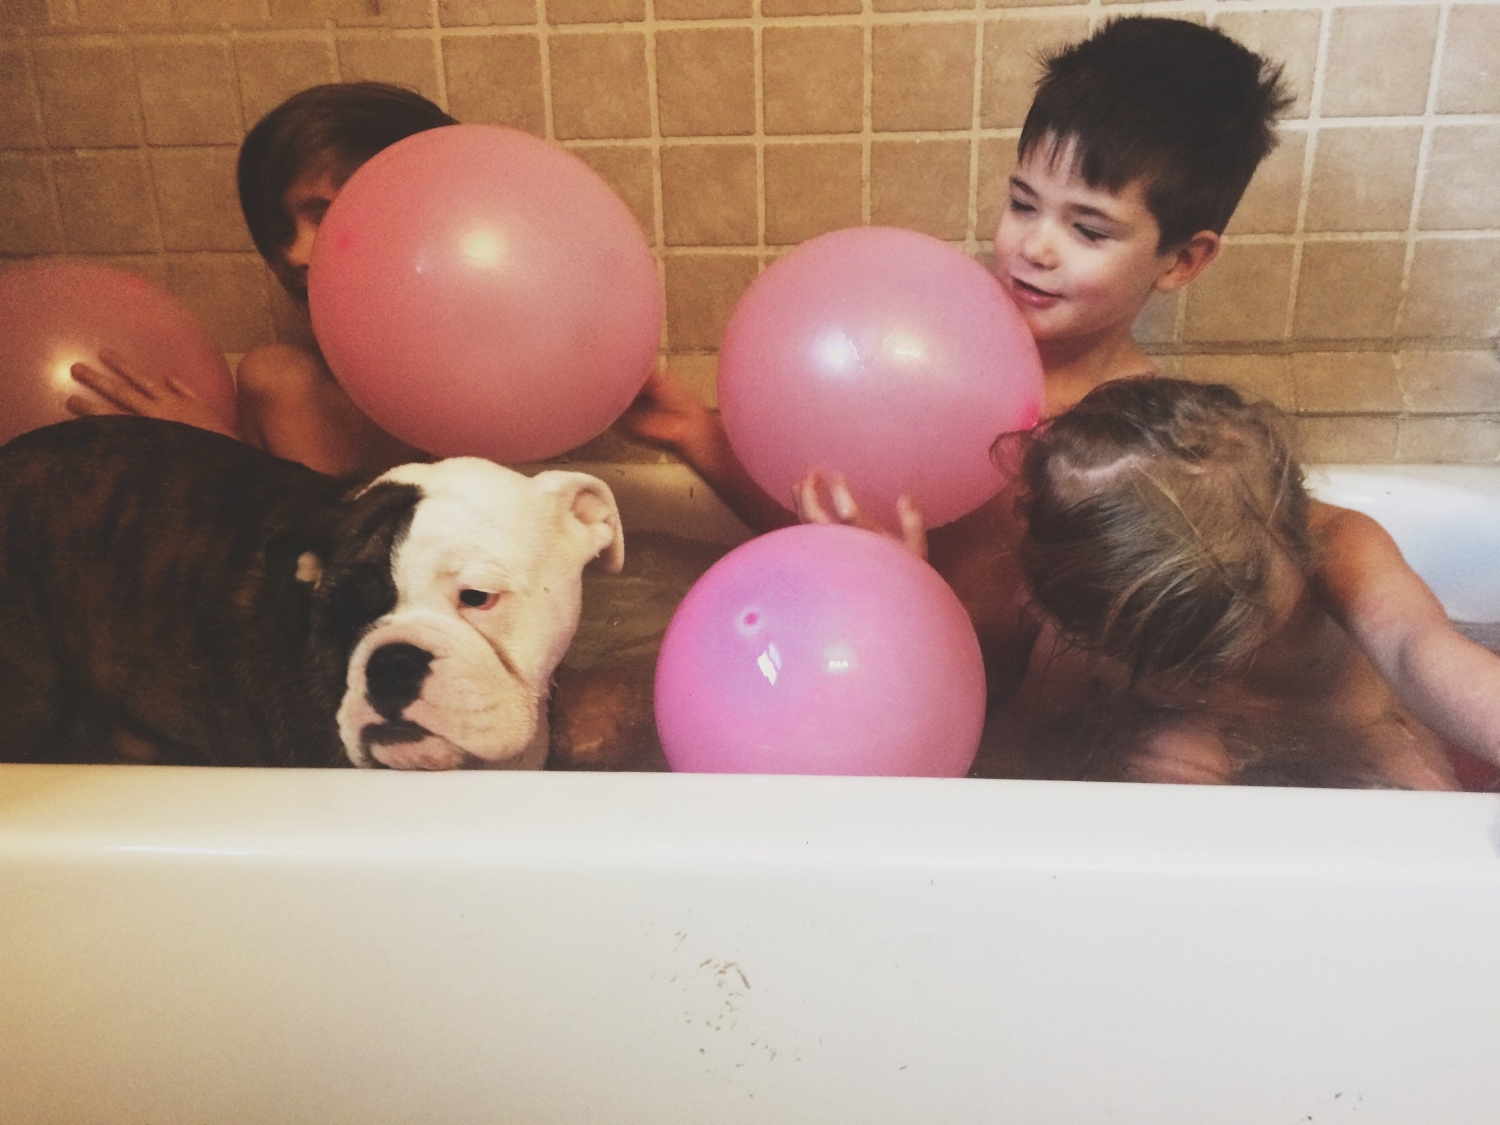 We filled her room with balloons, and what was meant to be a solo bath time quickly turned into a party in the tub. 3 kids, 6 balloons, and a puppy who apparently thought it would be fun to swim.